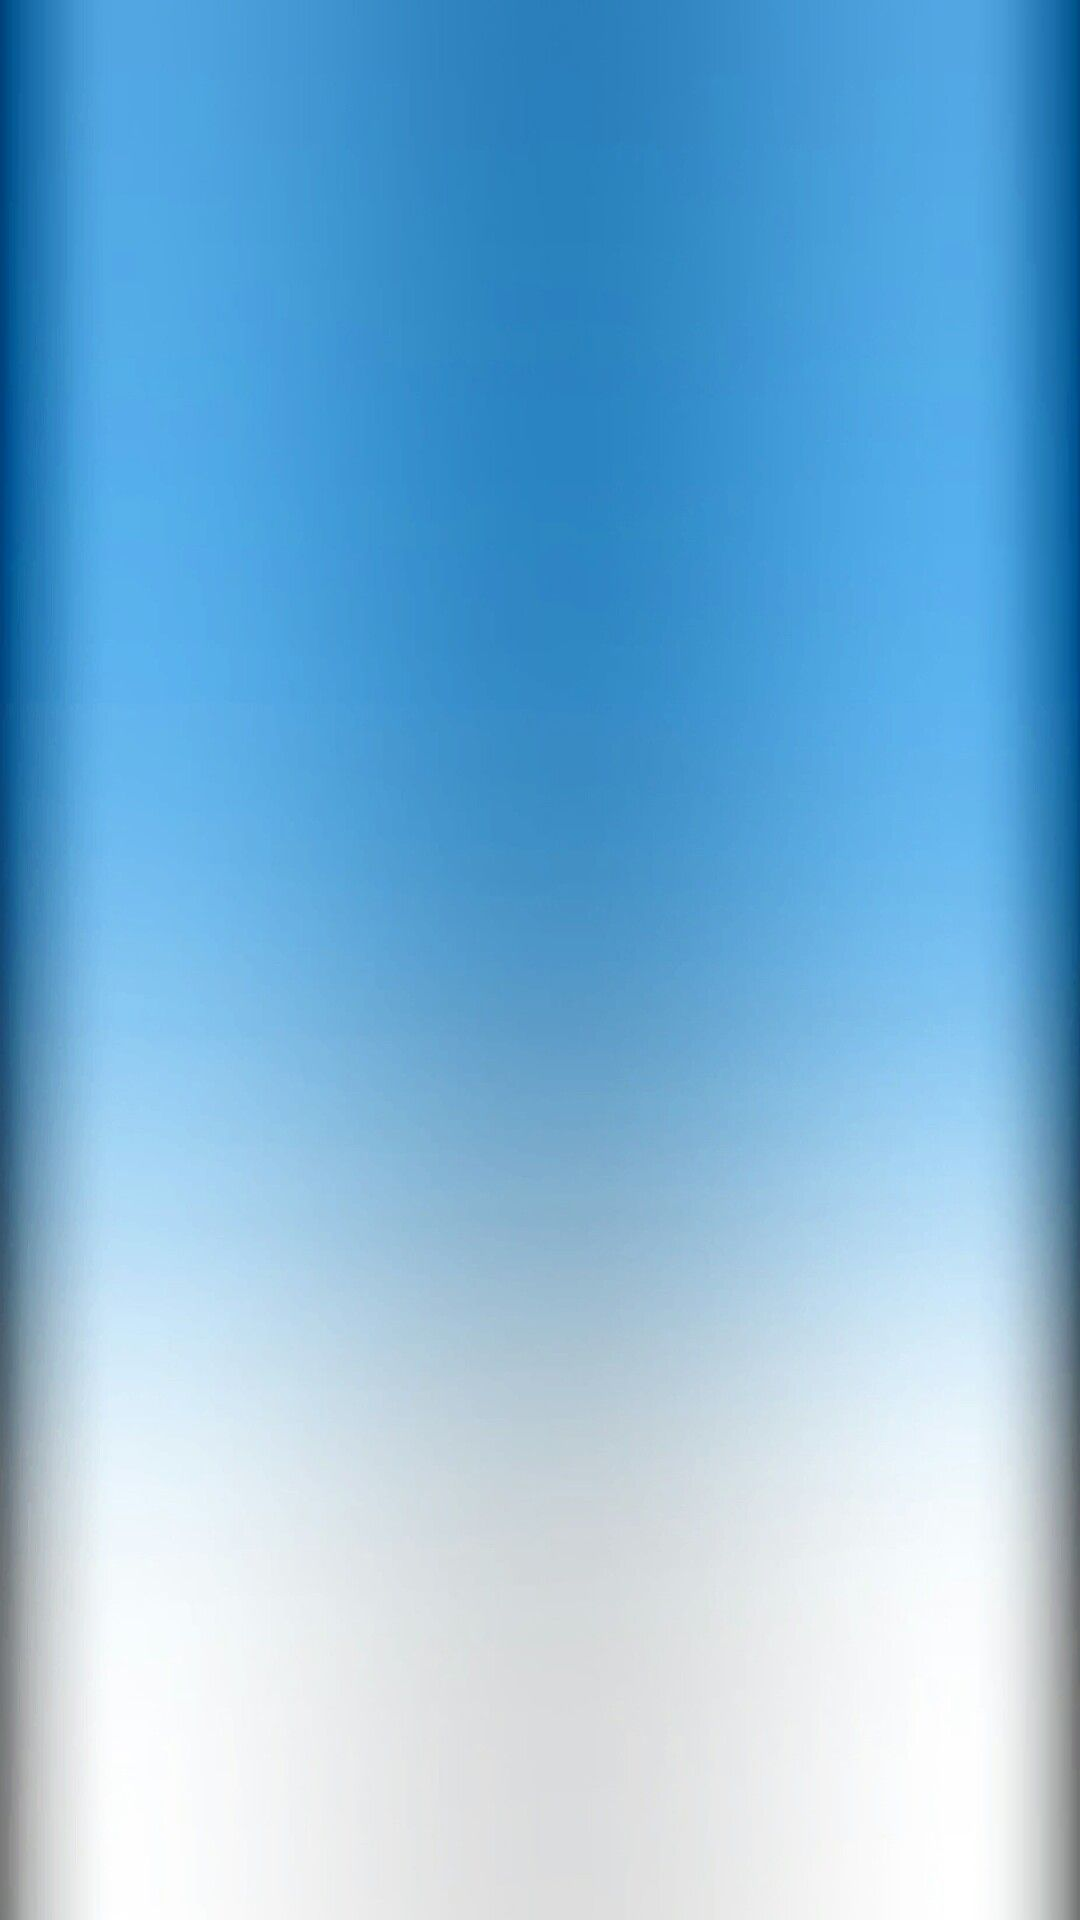 Abstract Blue Backgrounds iPhone s Wallpaper